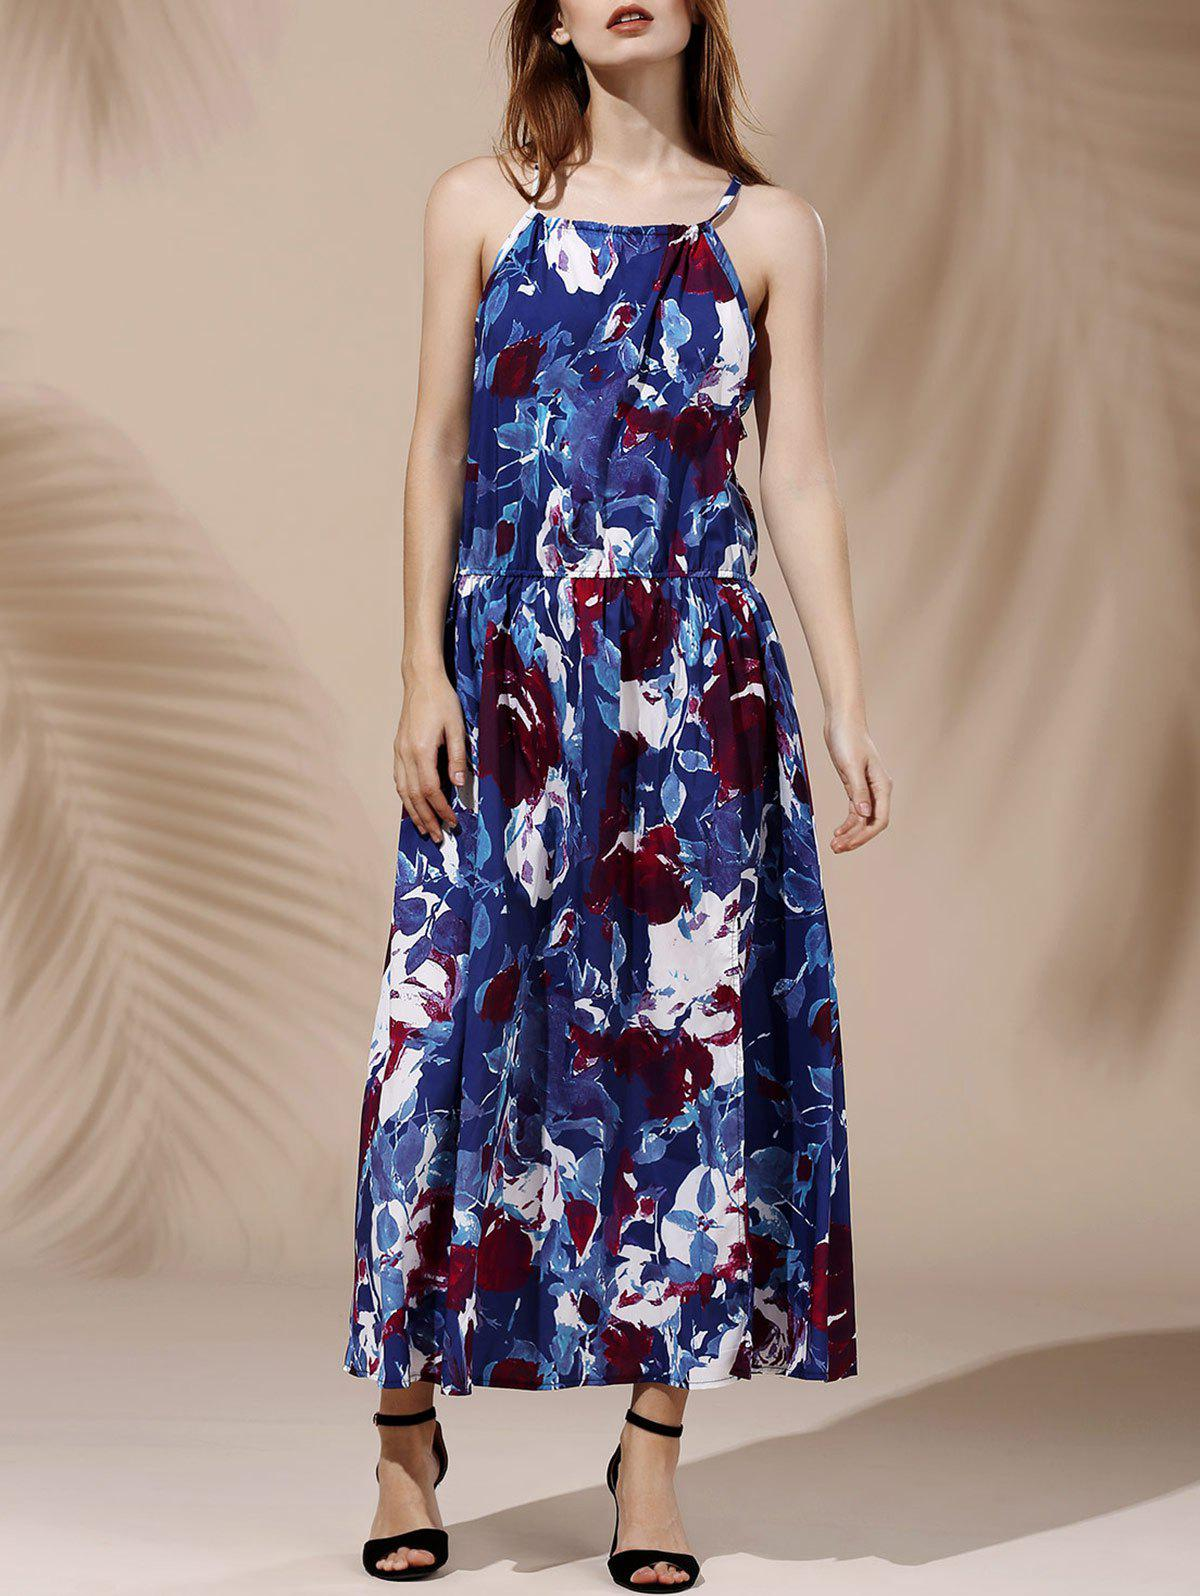 Charming Halterneck Sleeveless High-Slit Floral Print Women's Dress - PURPLISH BLUE M